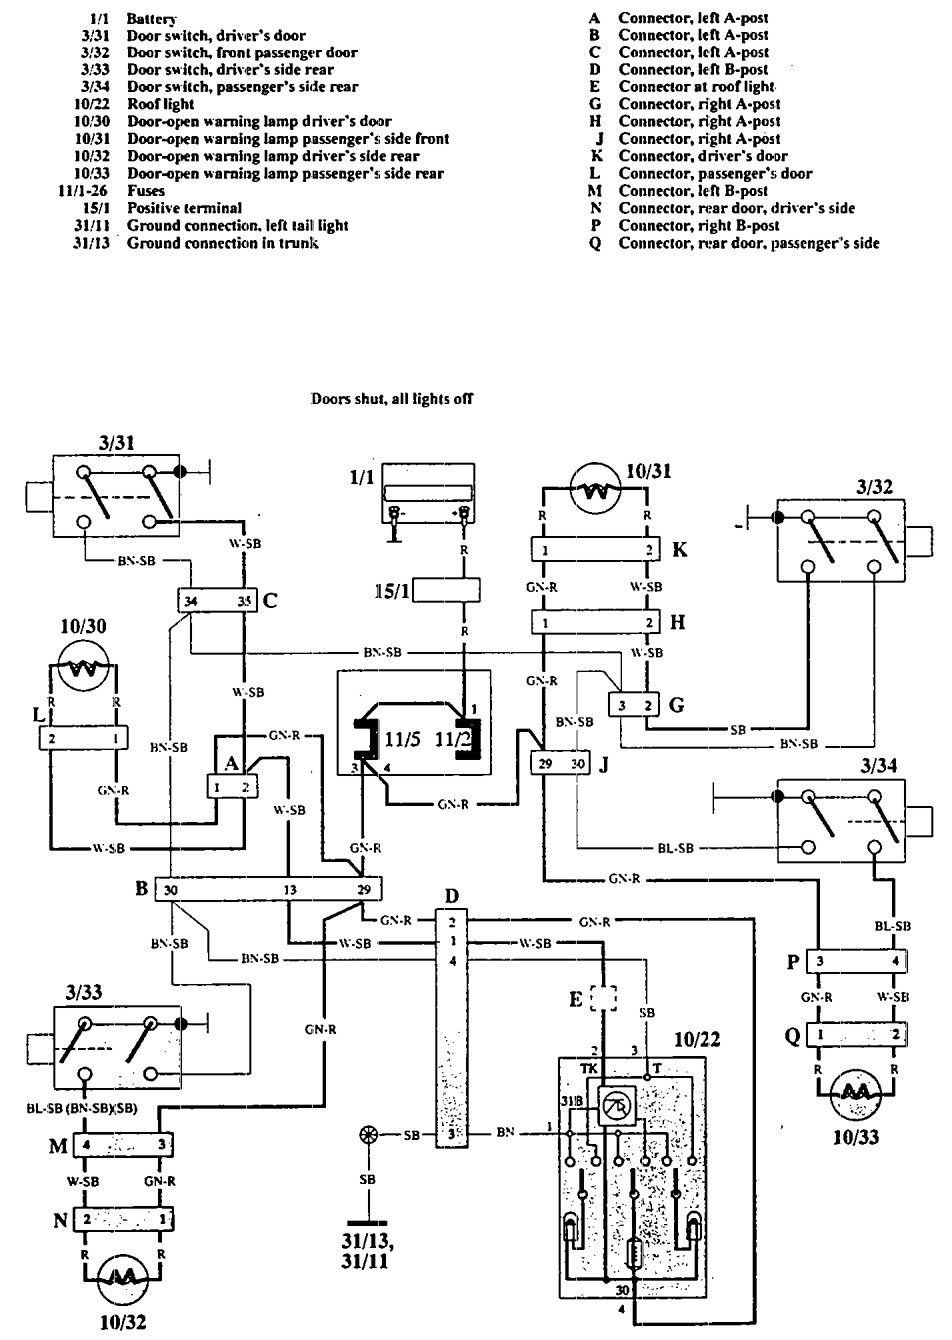 Interior Lights Wiring Diagram For 1993 Corvette Worksheet And 1986 Radio Schematic Diagrams Rh Ogmconsulting Co 1994